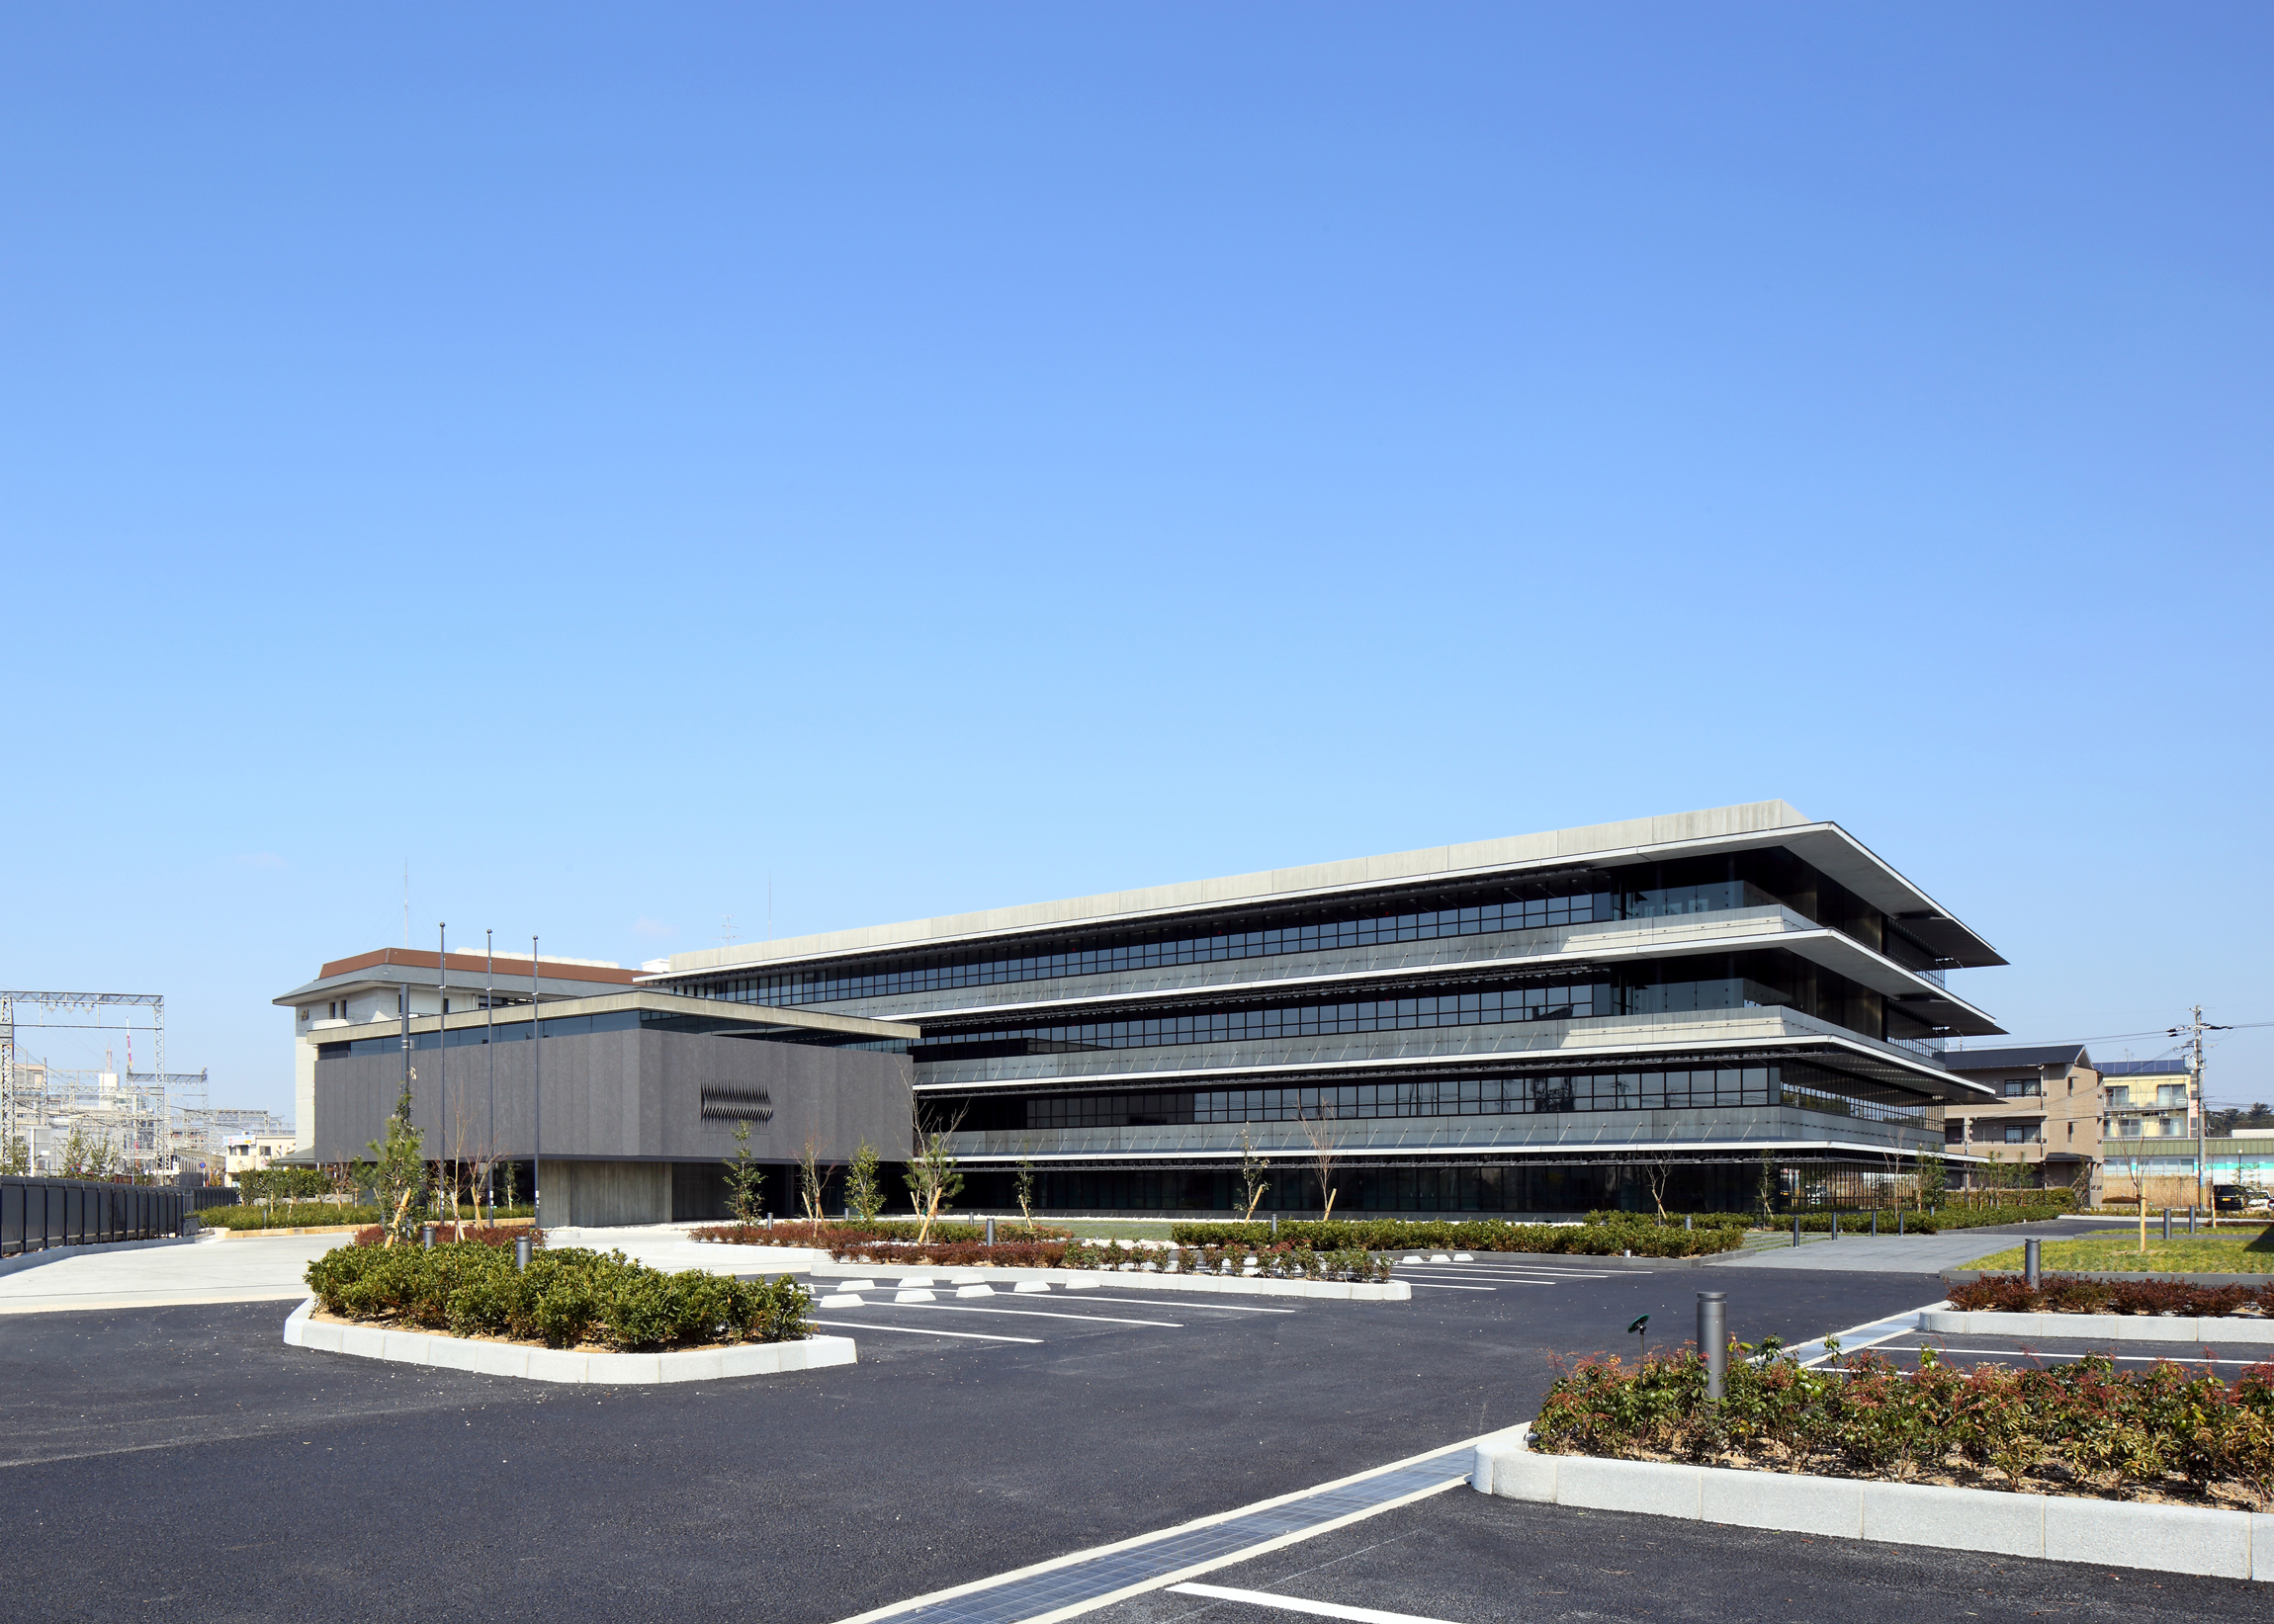 Exterior view of the Nara office building